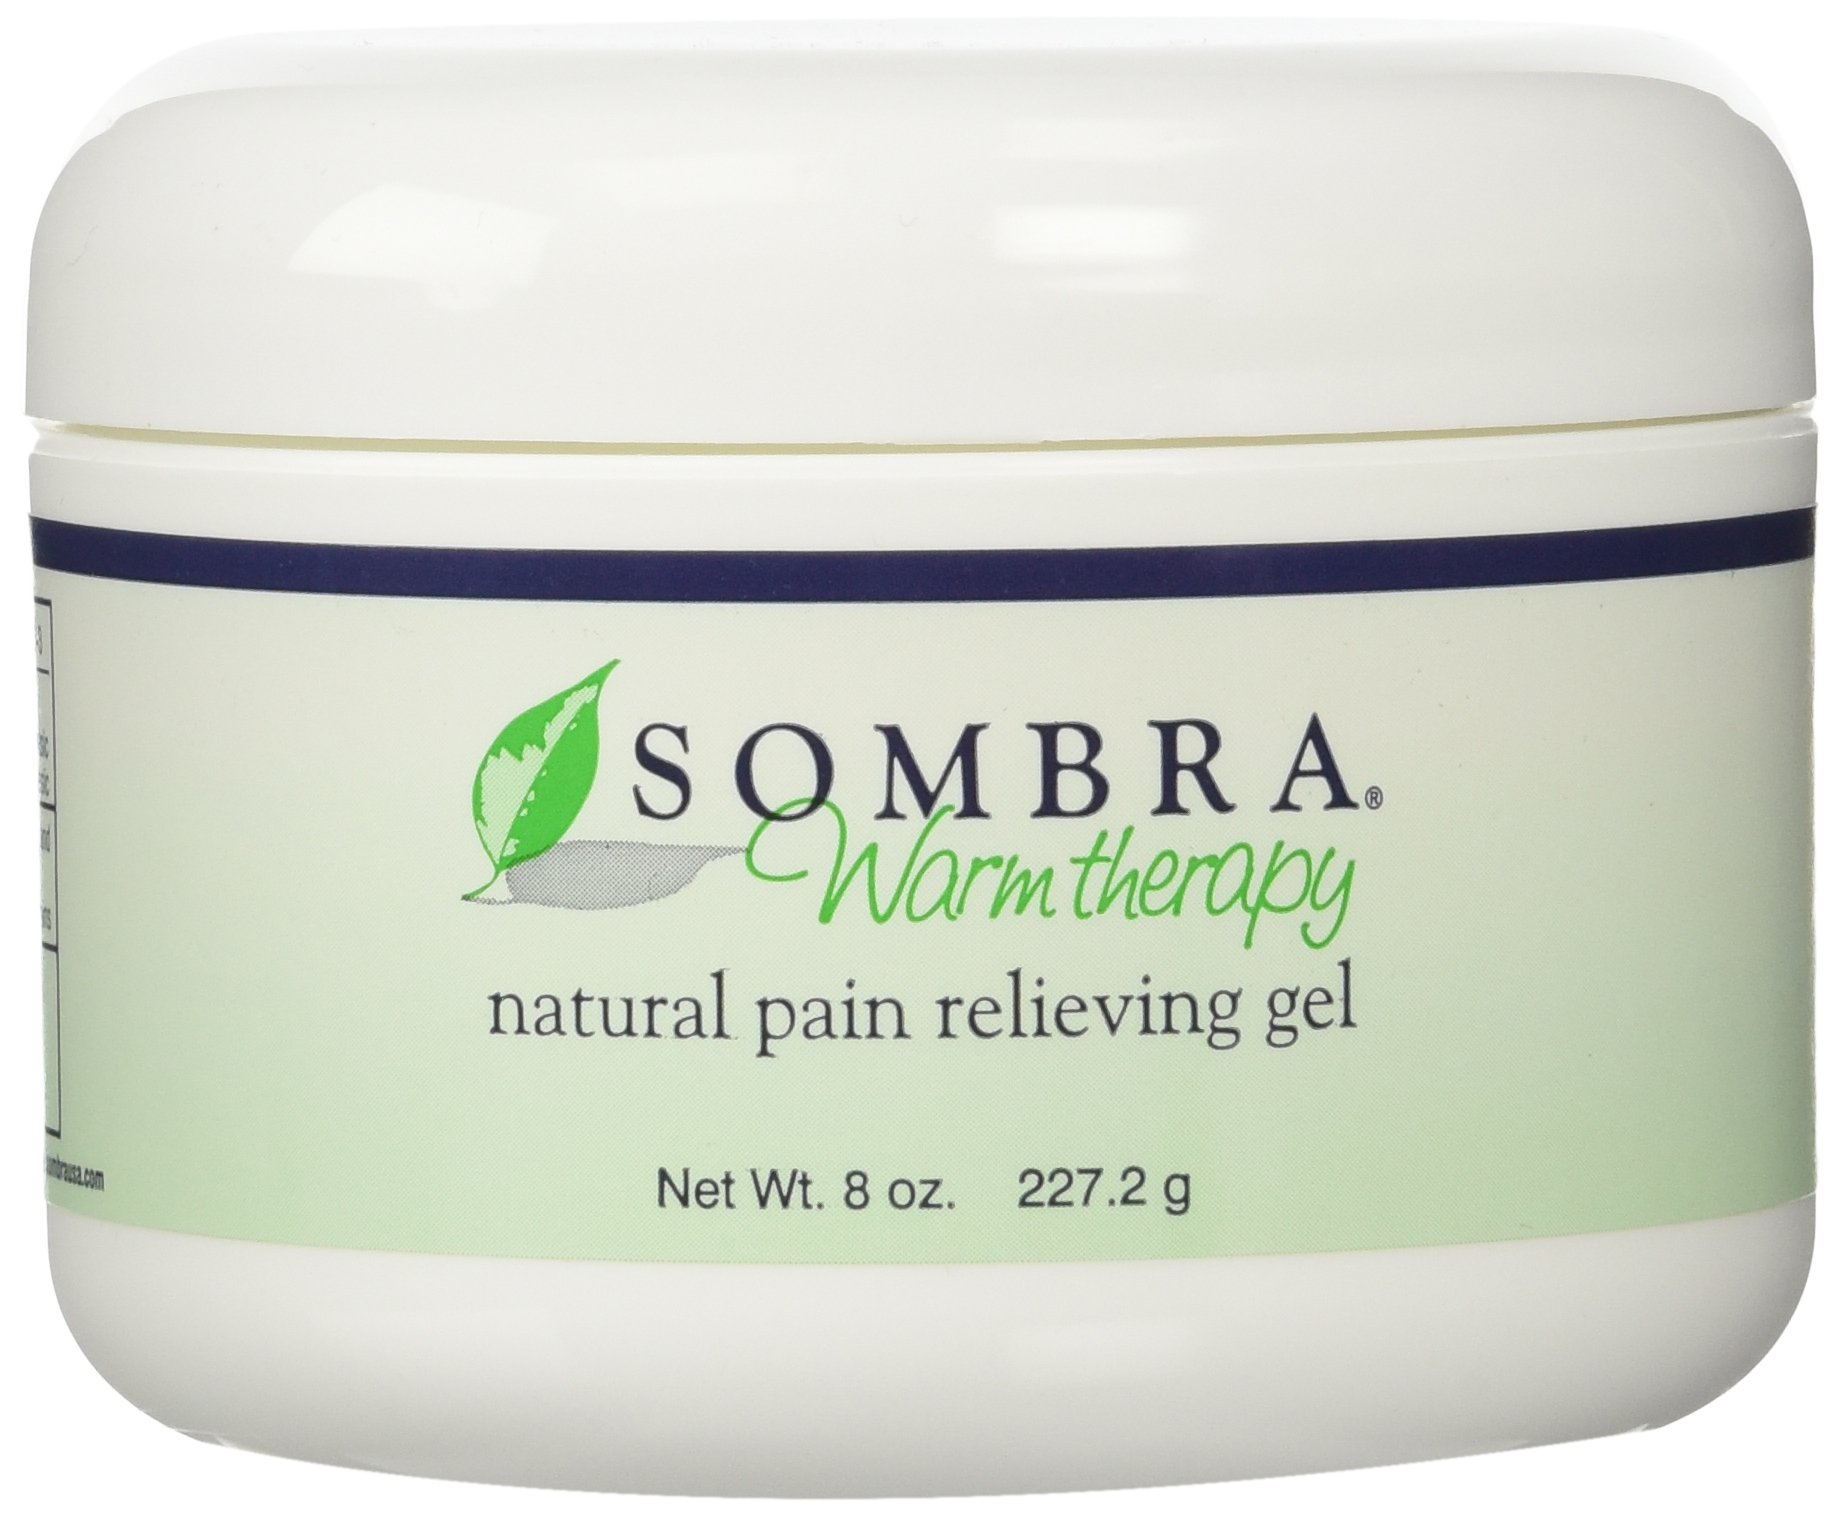 Sombra Warm Therapy Natural Pain Relieving Gel, 8 Ounce, 3 Count